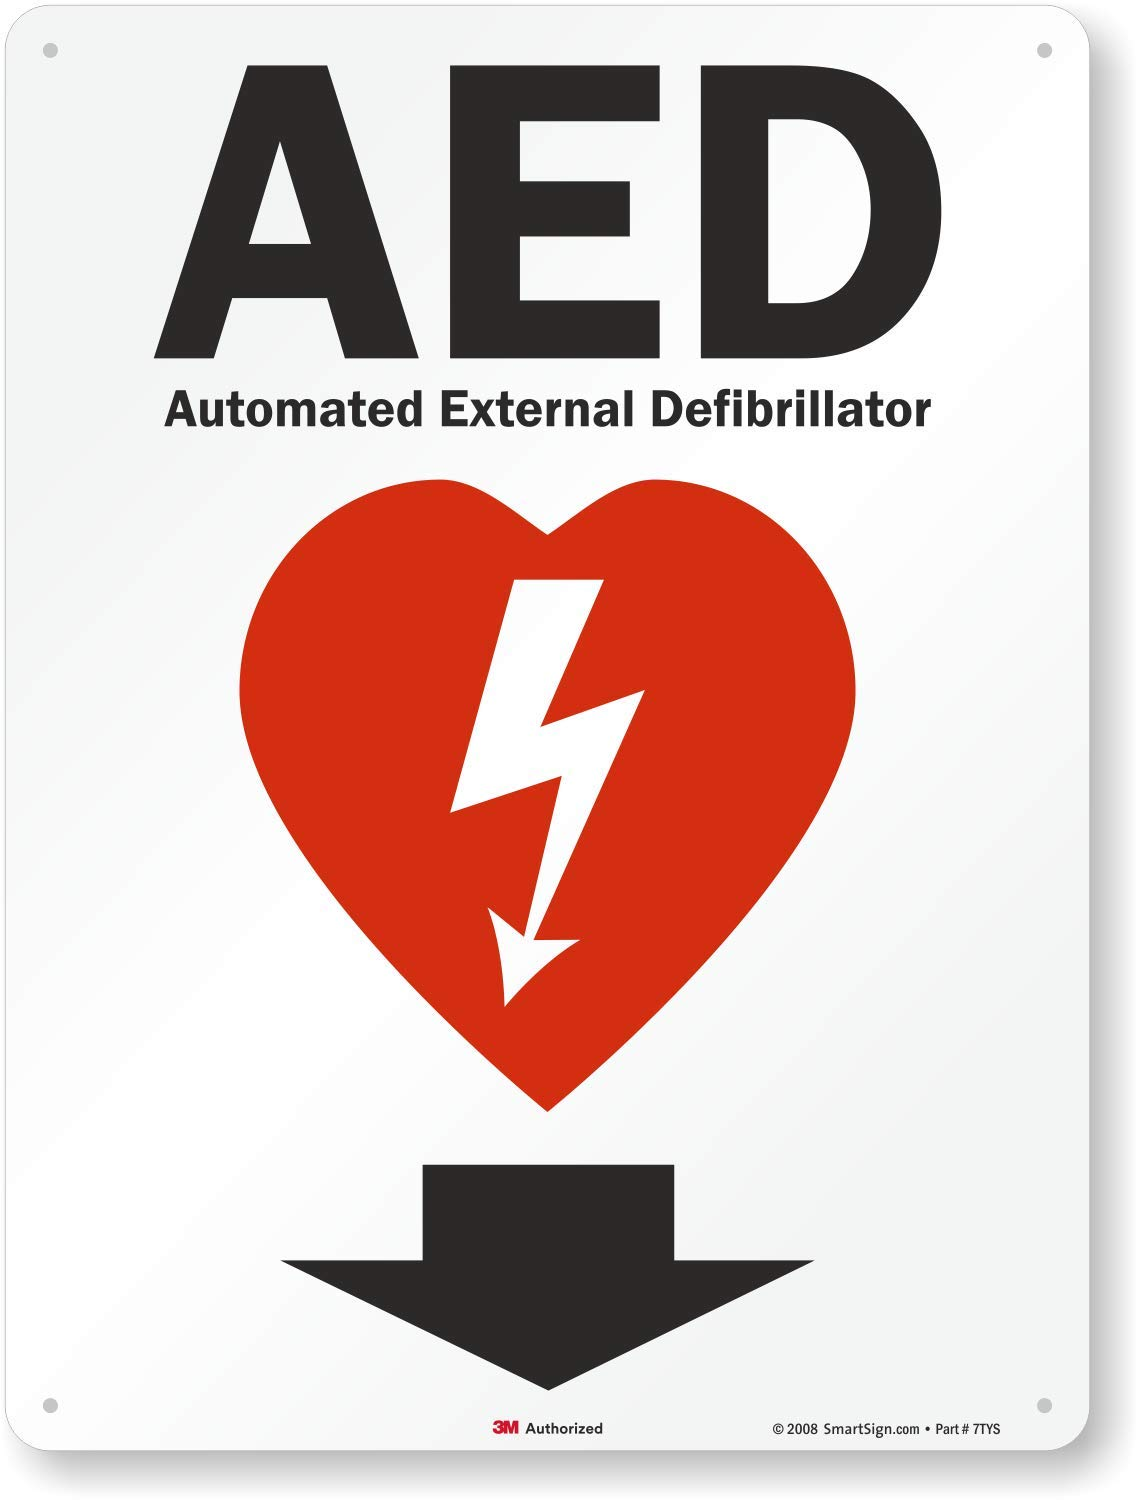 Amazon Com Smartsign Aed Automated External Defibrillator Sign With Down Arrow 18 X 24 3m High Intensity Grade Reflective Aluminum Health Household